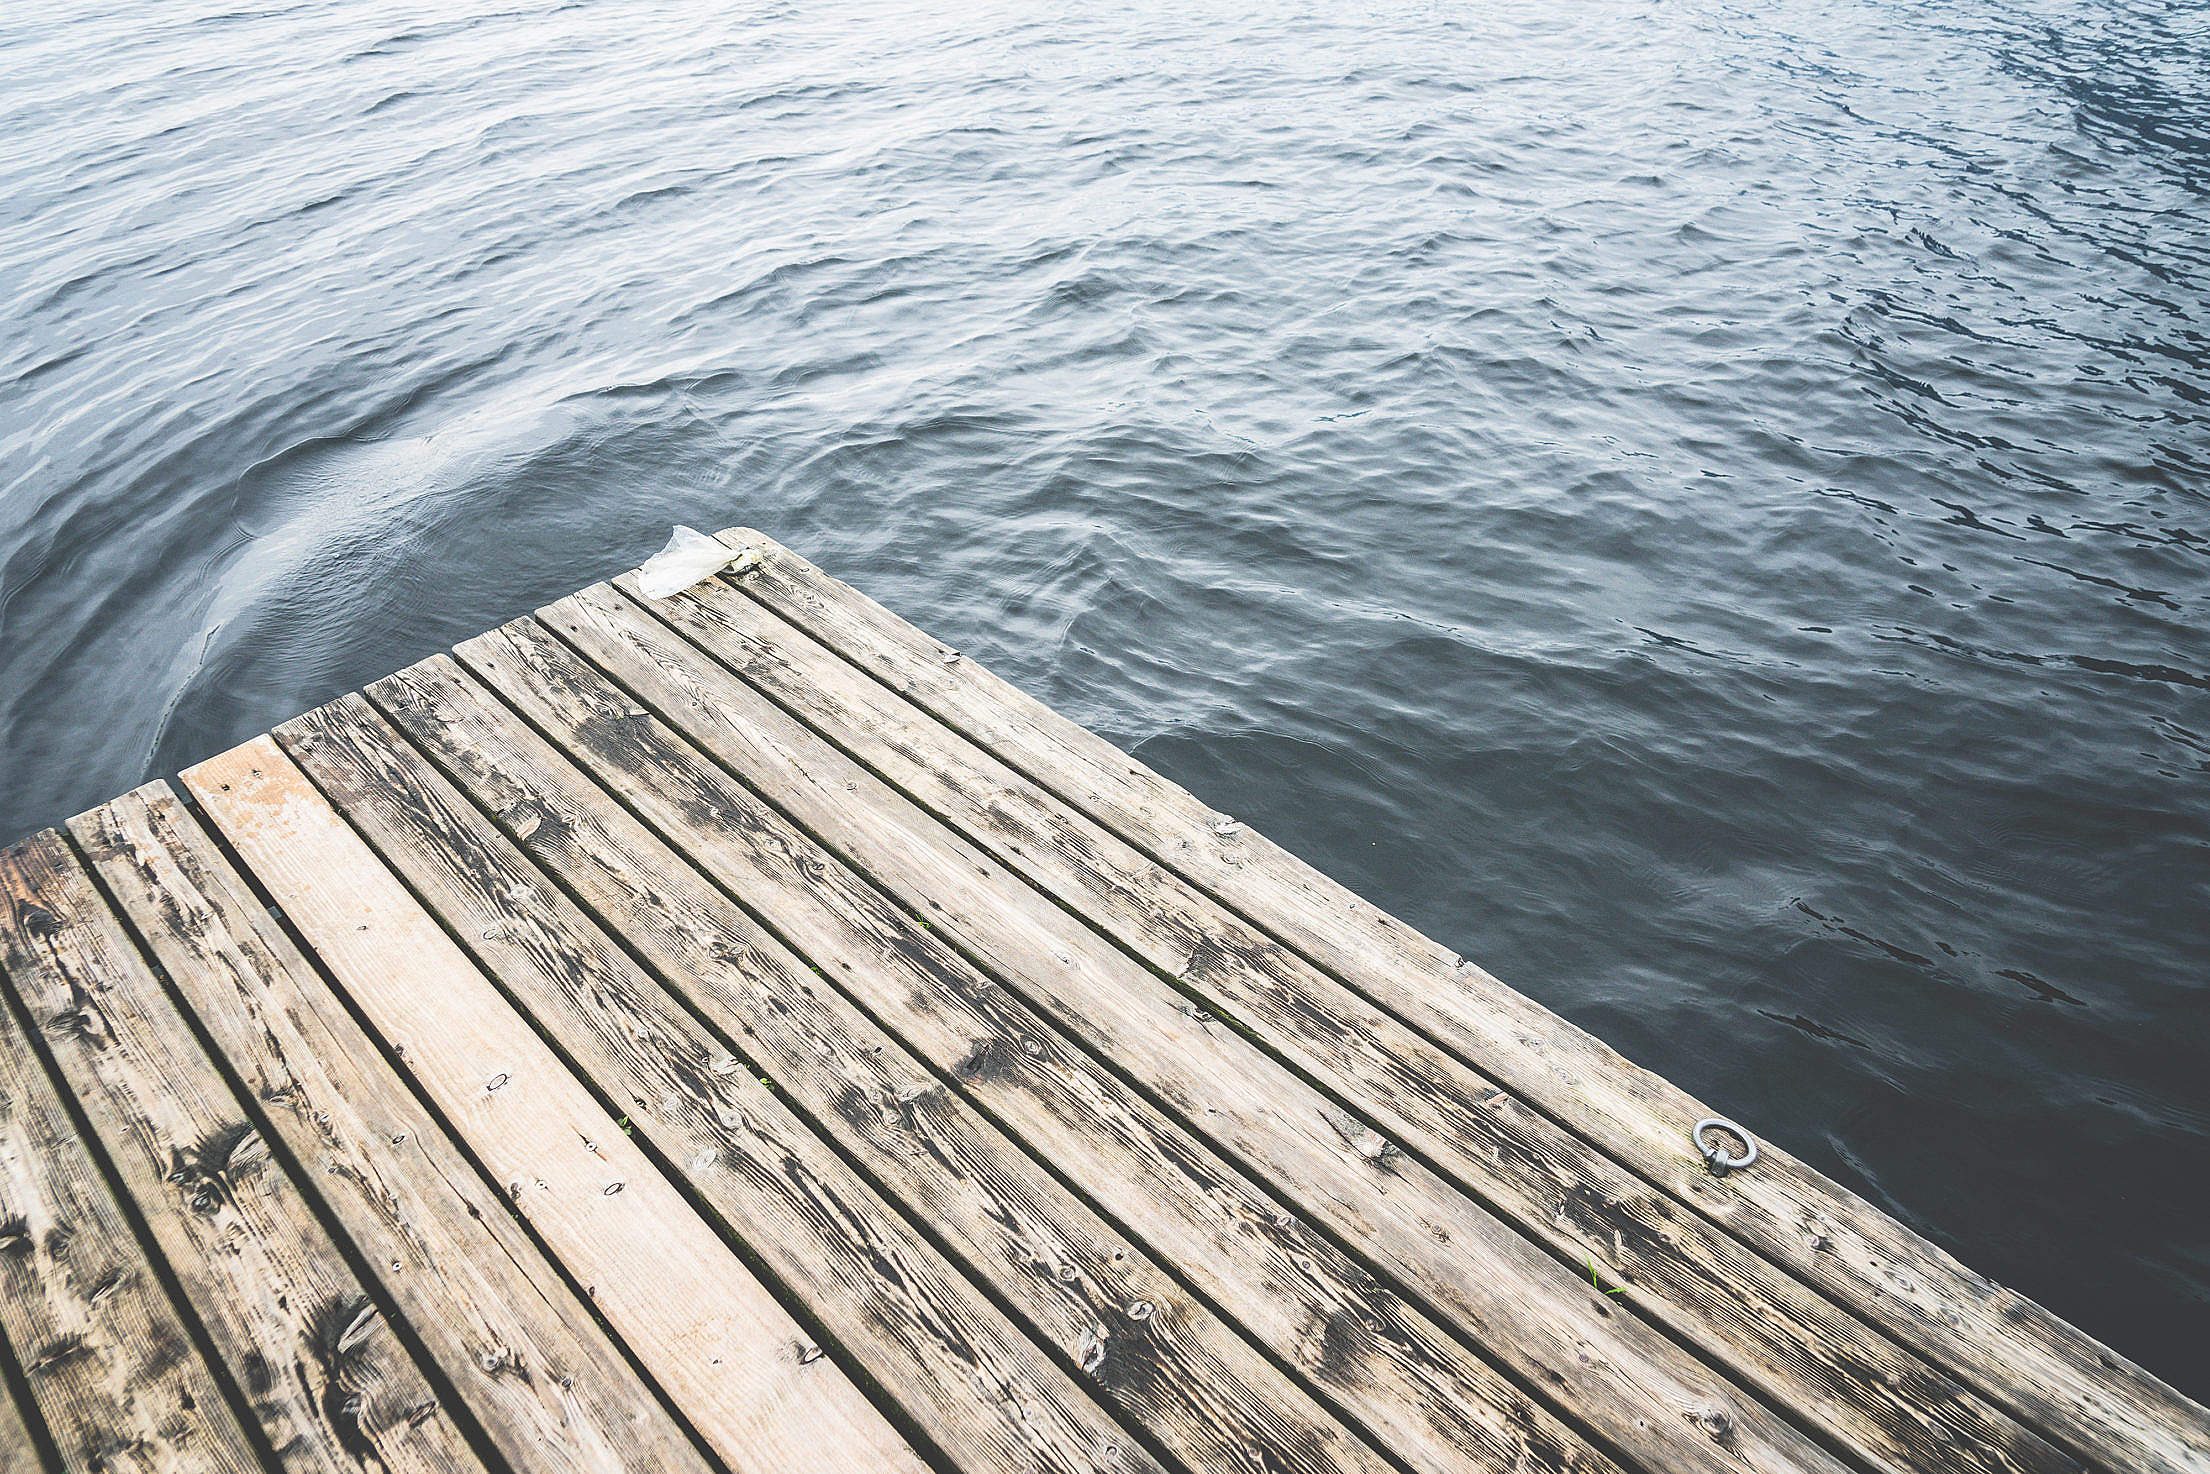 Minimalistic Shot of a Wooden Pier on a Lake Free Stock Photo